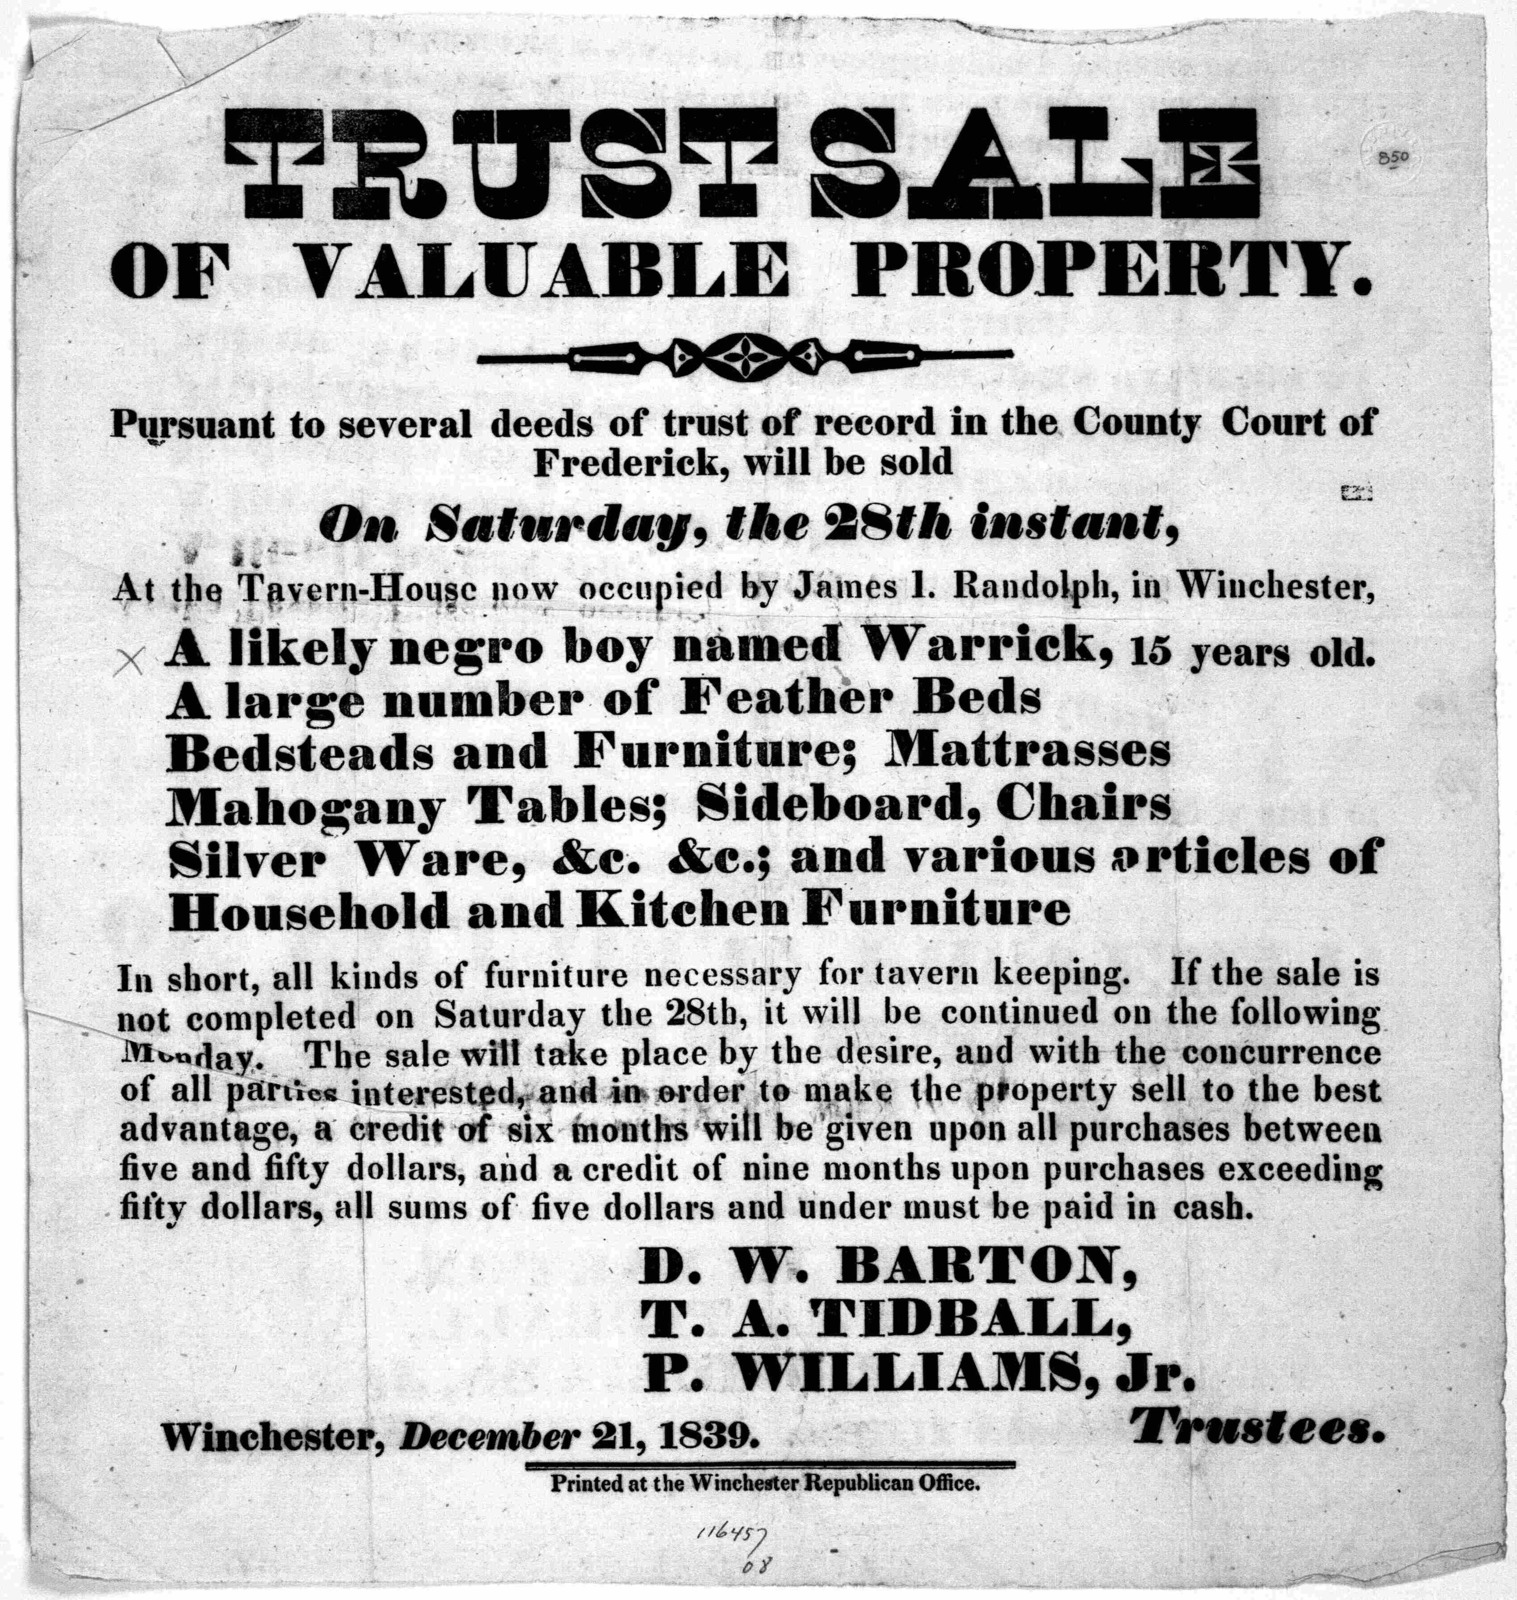 Trust sale of valuable property. Pursuant to several deeds of trust of record in the County Court of Frederick, will be sold on Saturday, the 28th instant, at the tavern-house now occupied by James I. Randolph, in Winchester ... D. W. Barton, T.